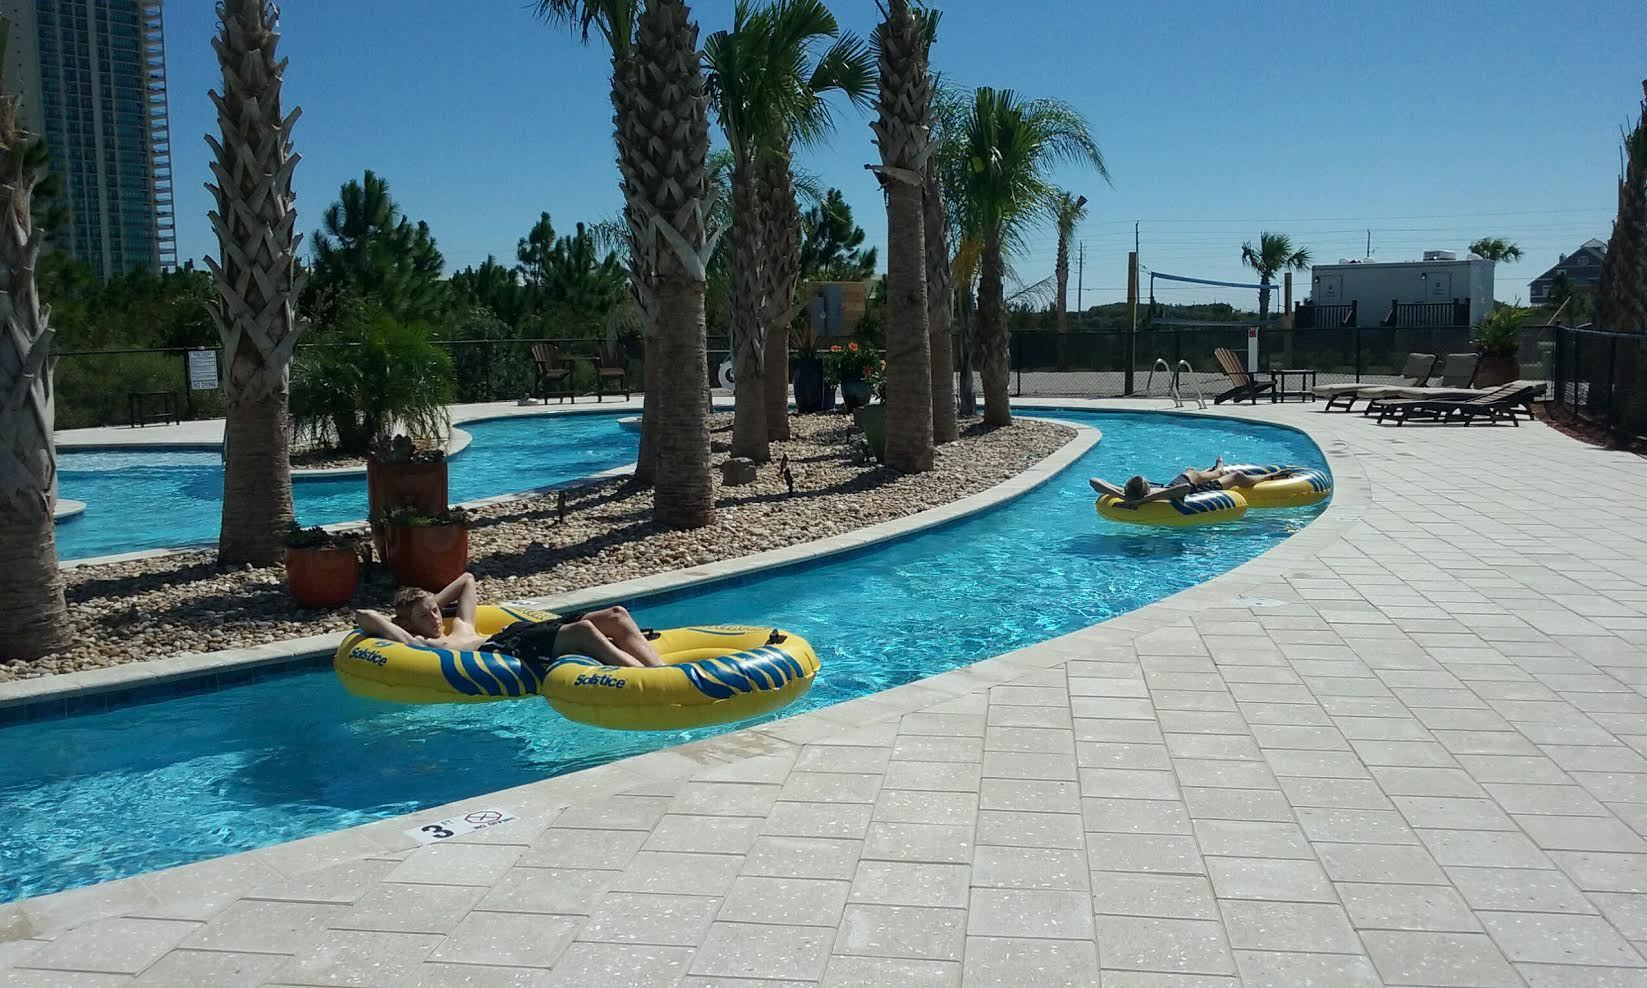 Buena Vista Coastal RV Resort